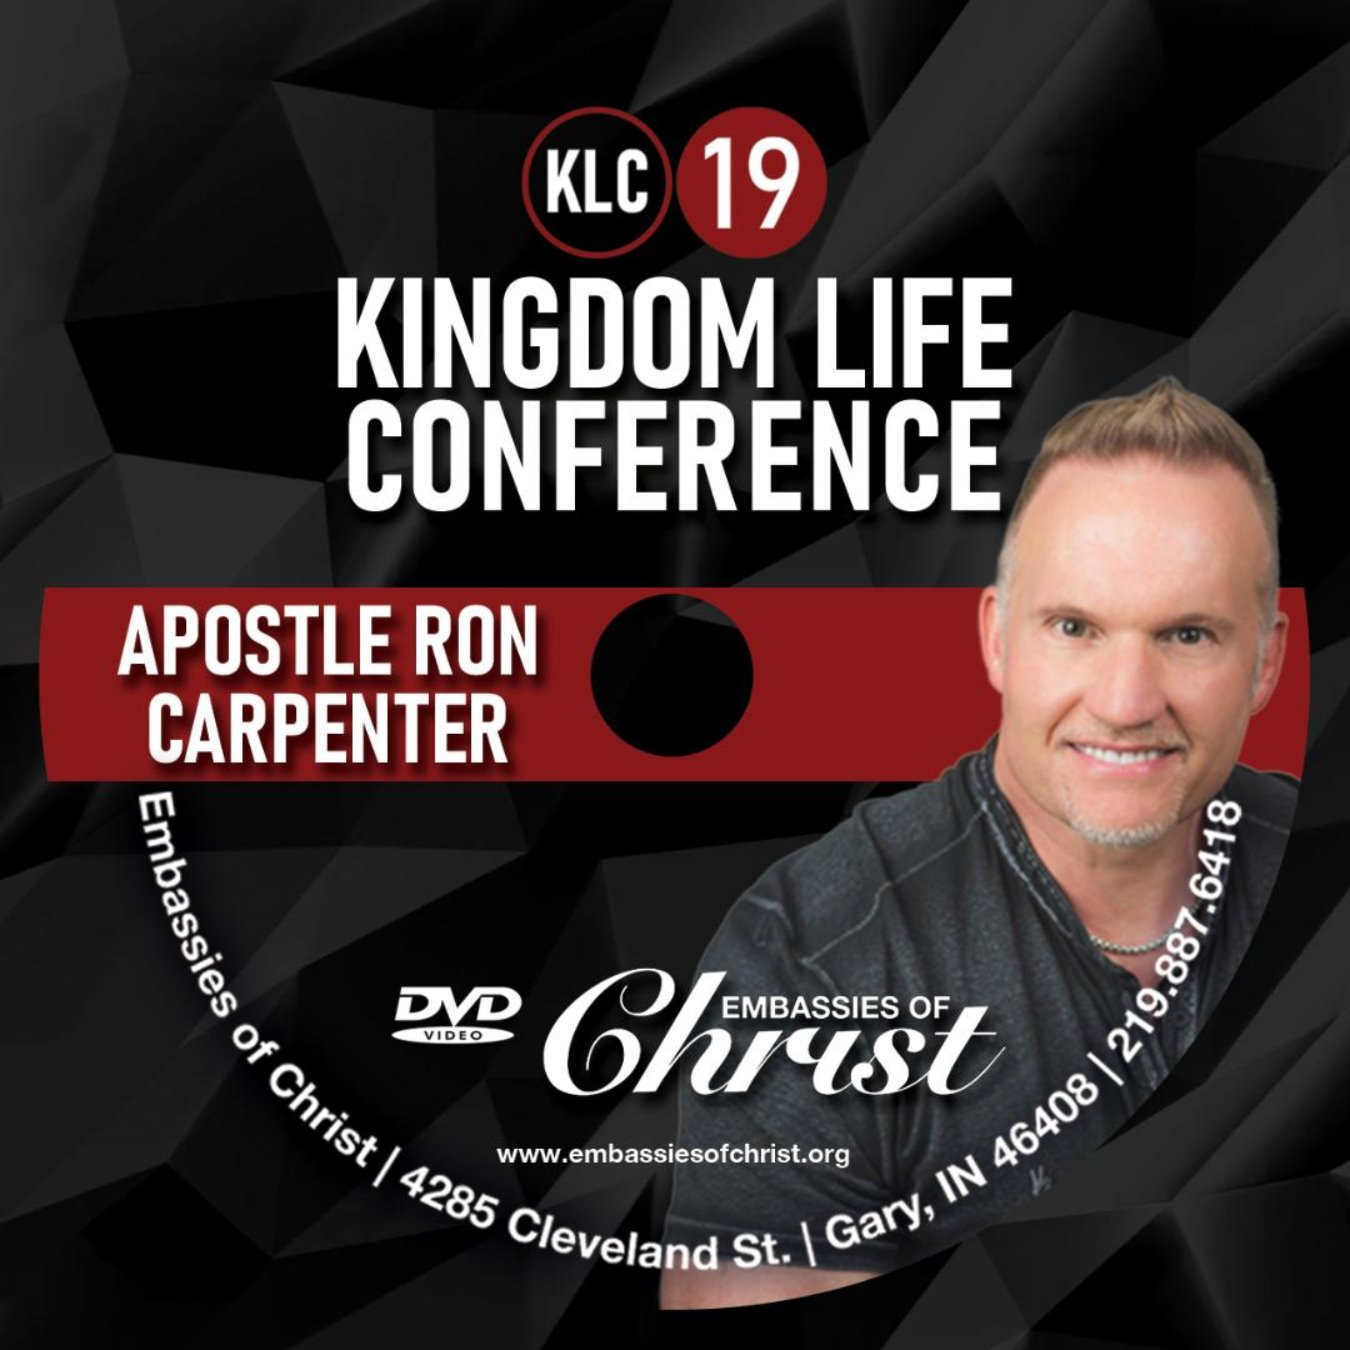 Apostle Ron Carpenter